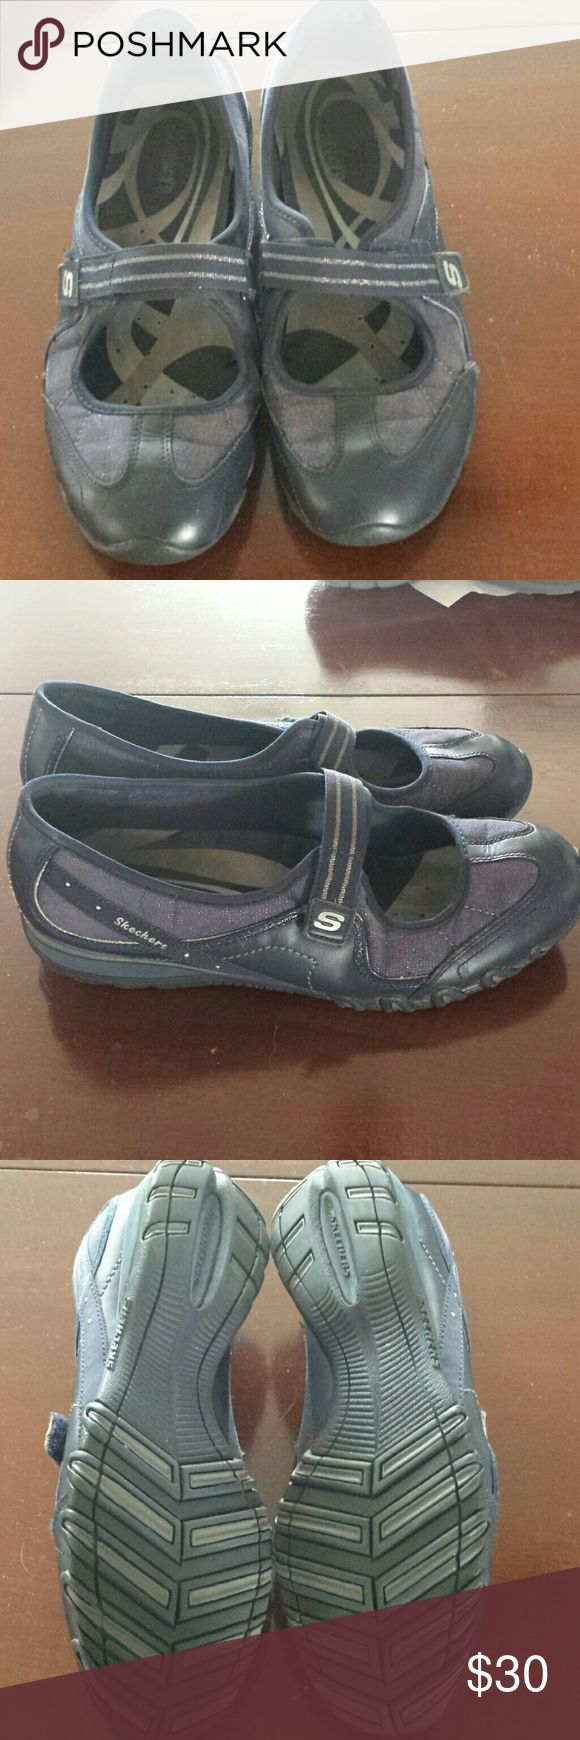 Skechers women's navy Women's Navy Skechers.  Mary Jane style. Velcro closure. Navy leather with textile upper.  Excellent condition. Worn just a few times. Skechers Shoes Athletic Shoes